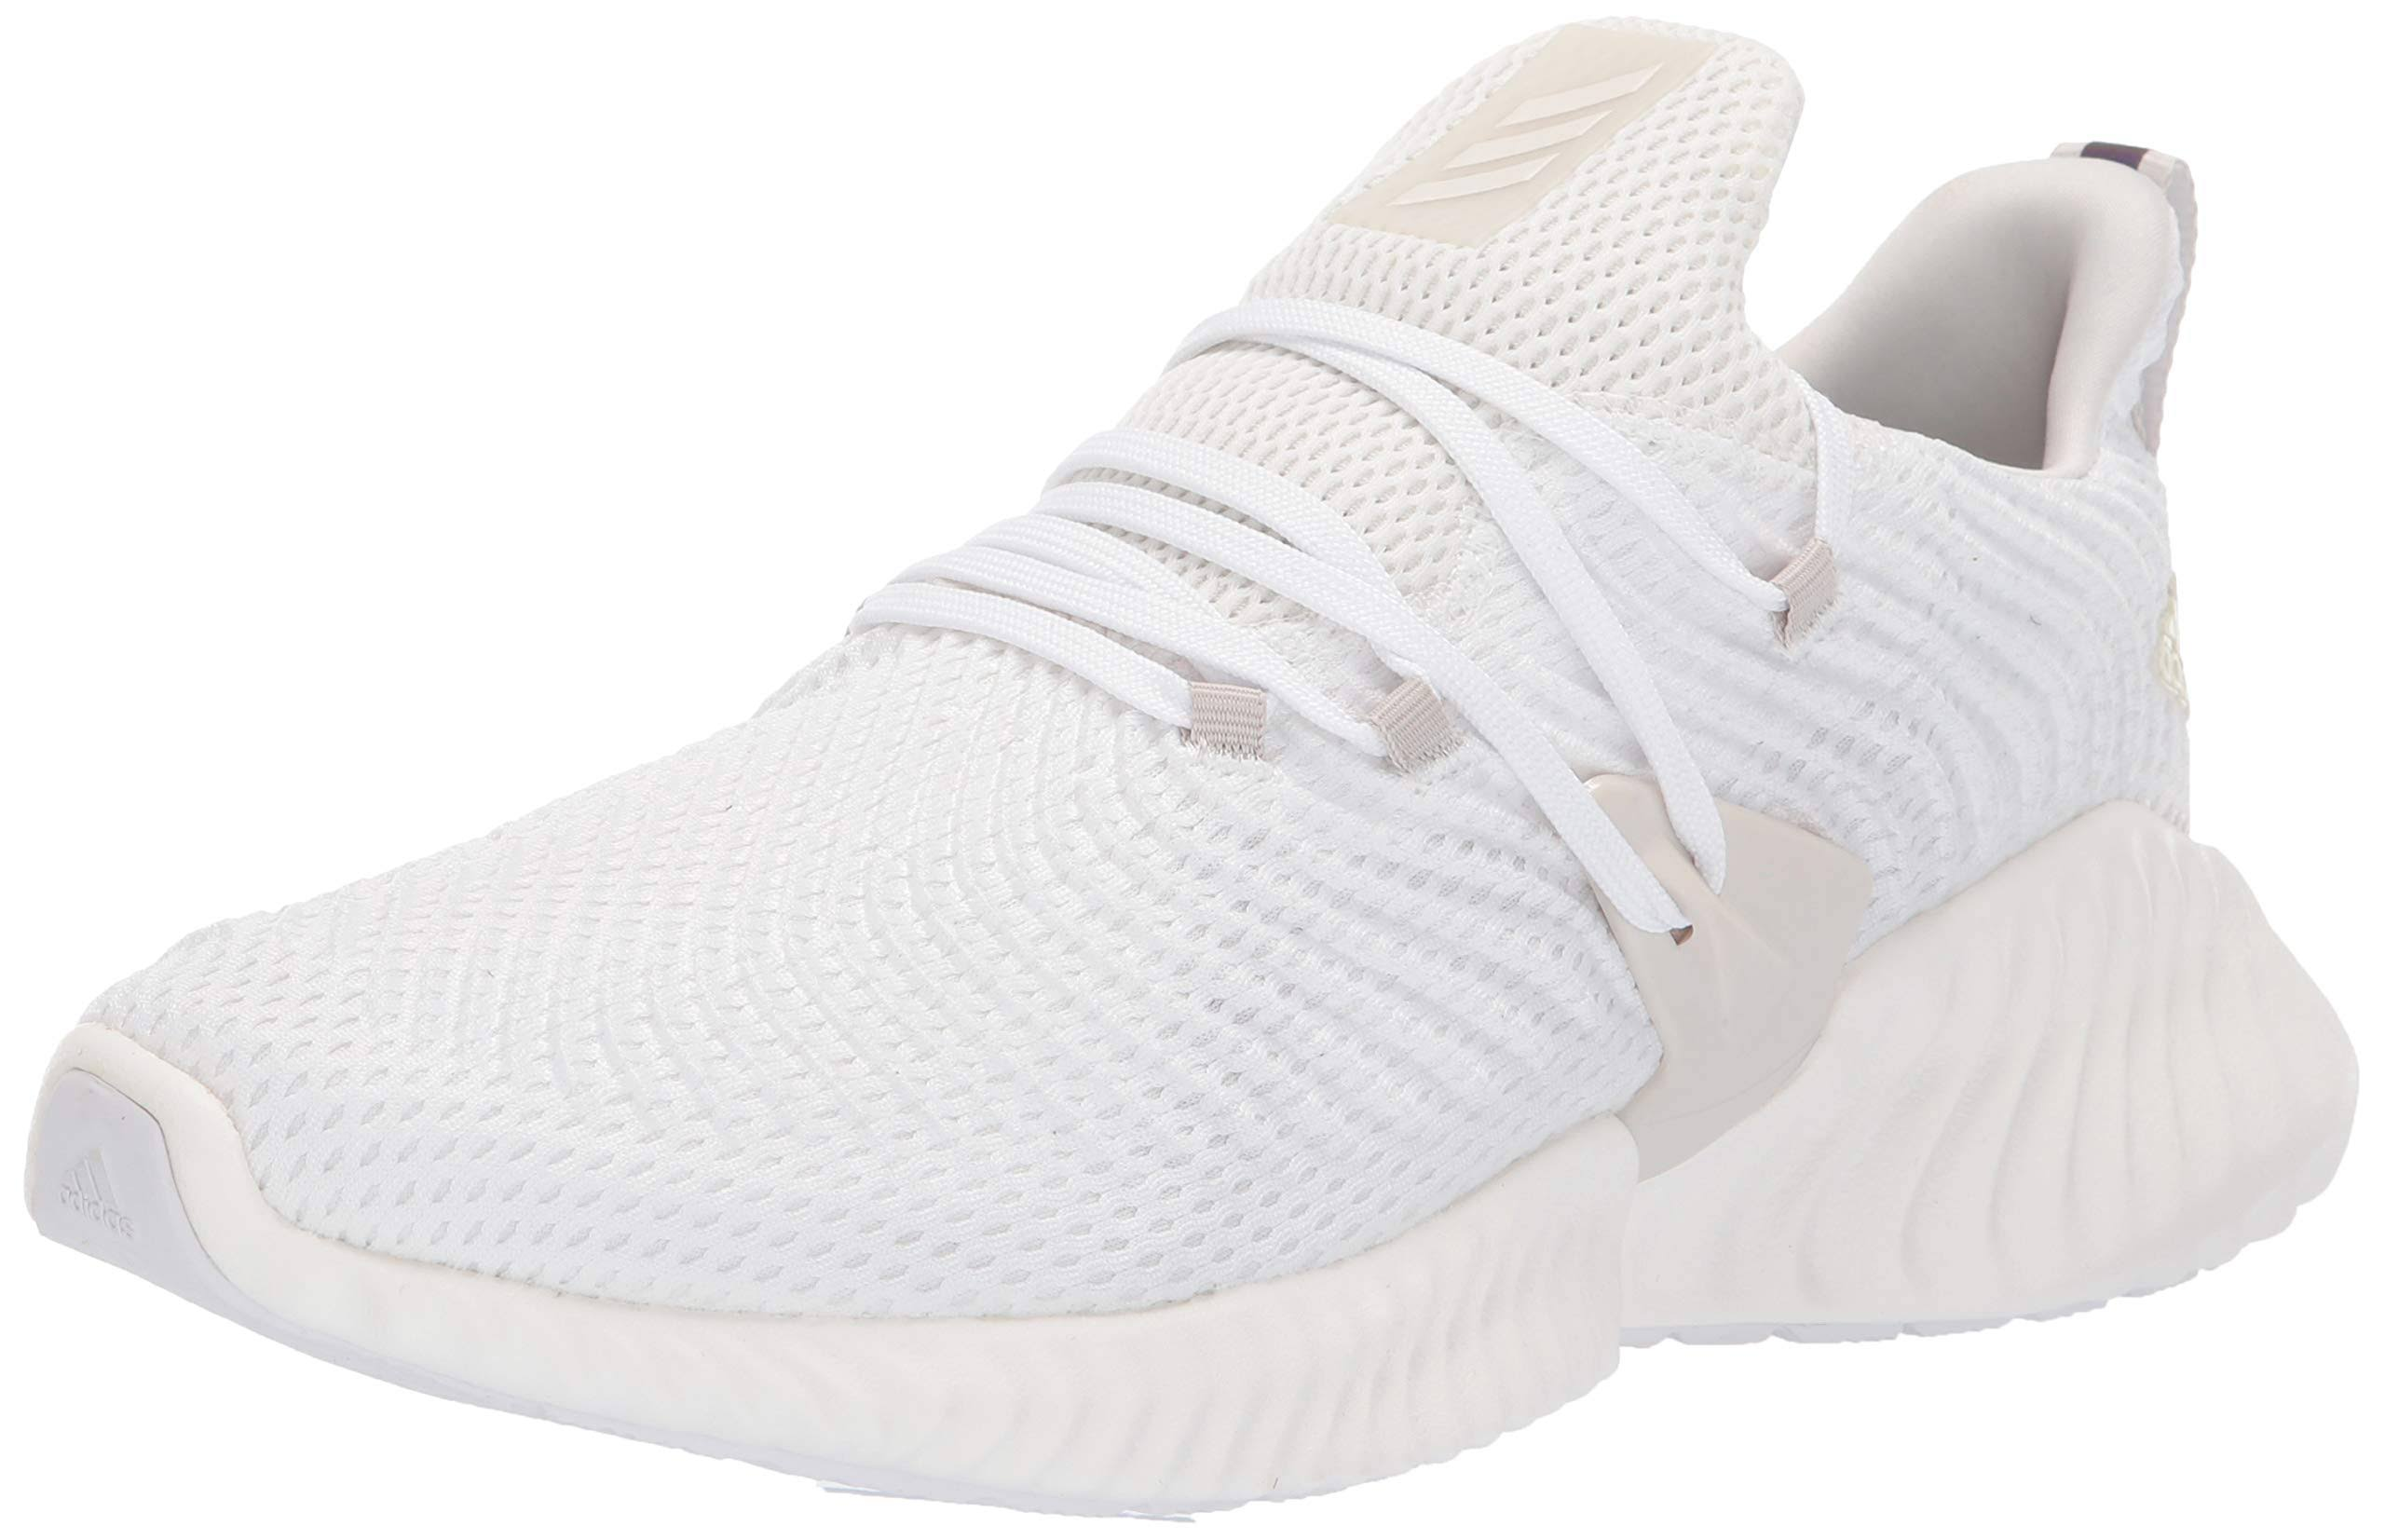 Running 5 Off White 9 Shoes Instinct Hombre Raw Adidas Cloud Alphabounce PpqwBTxqS